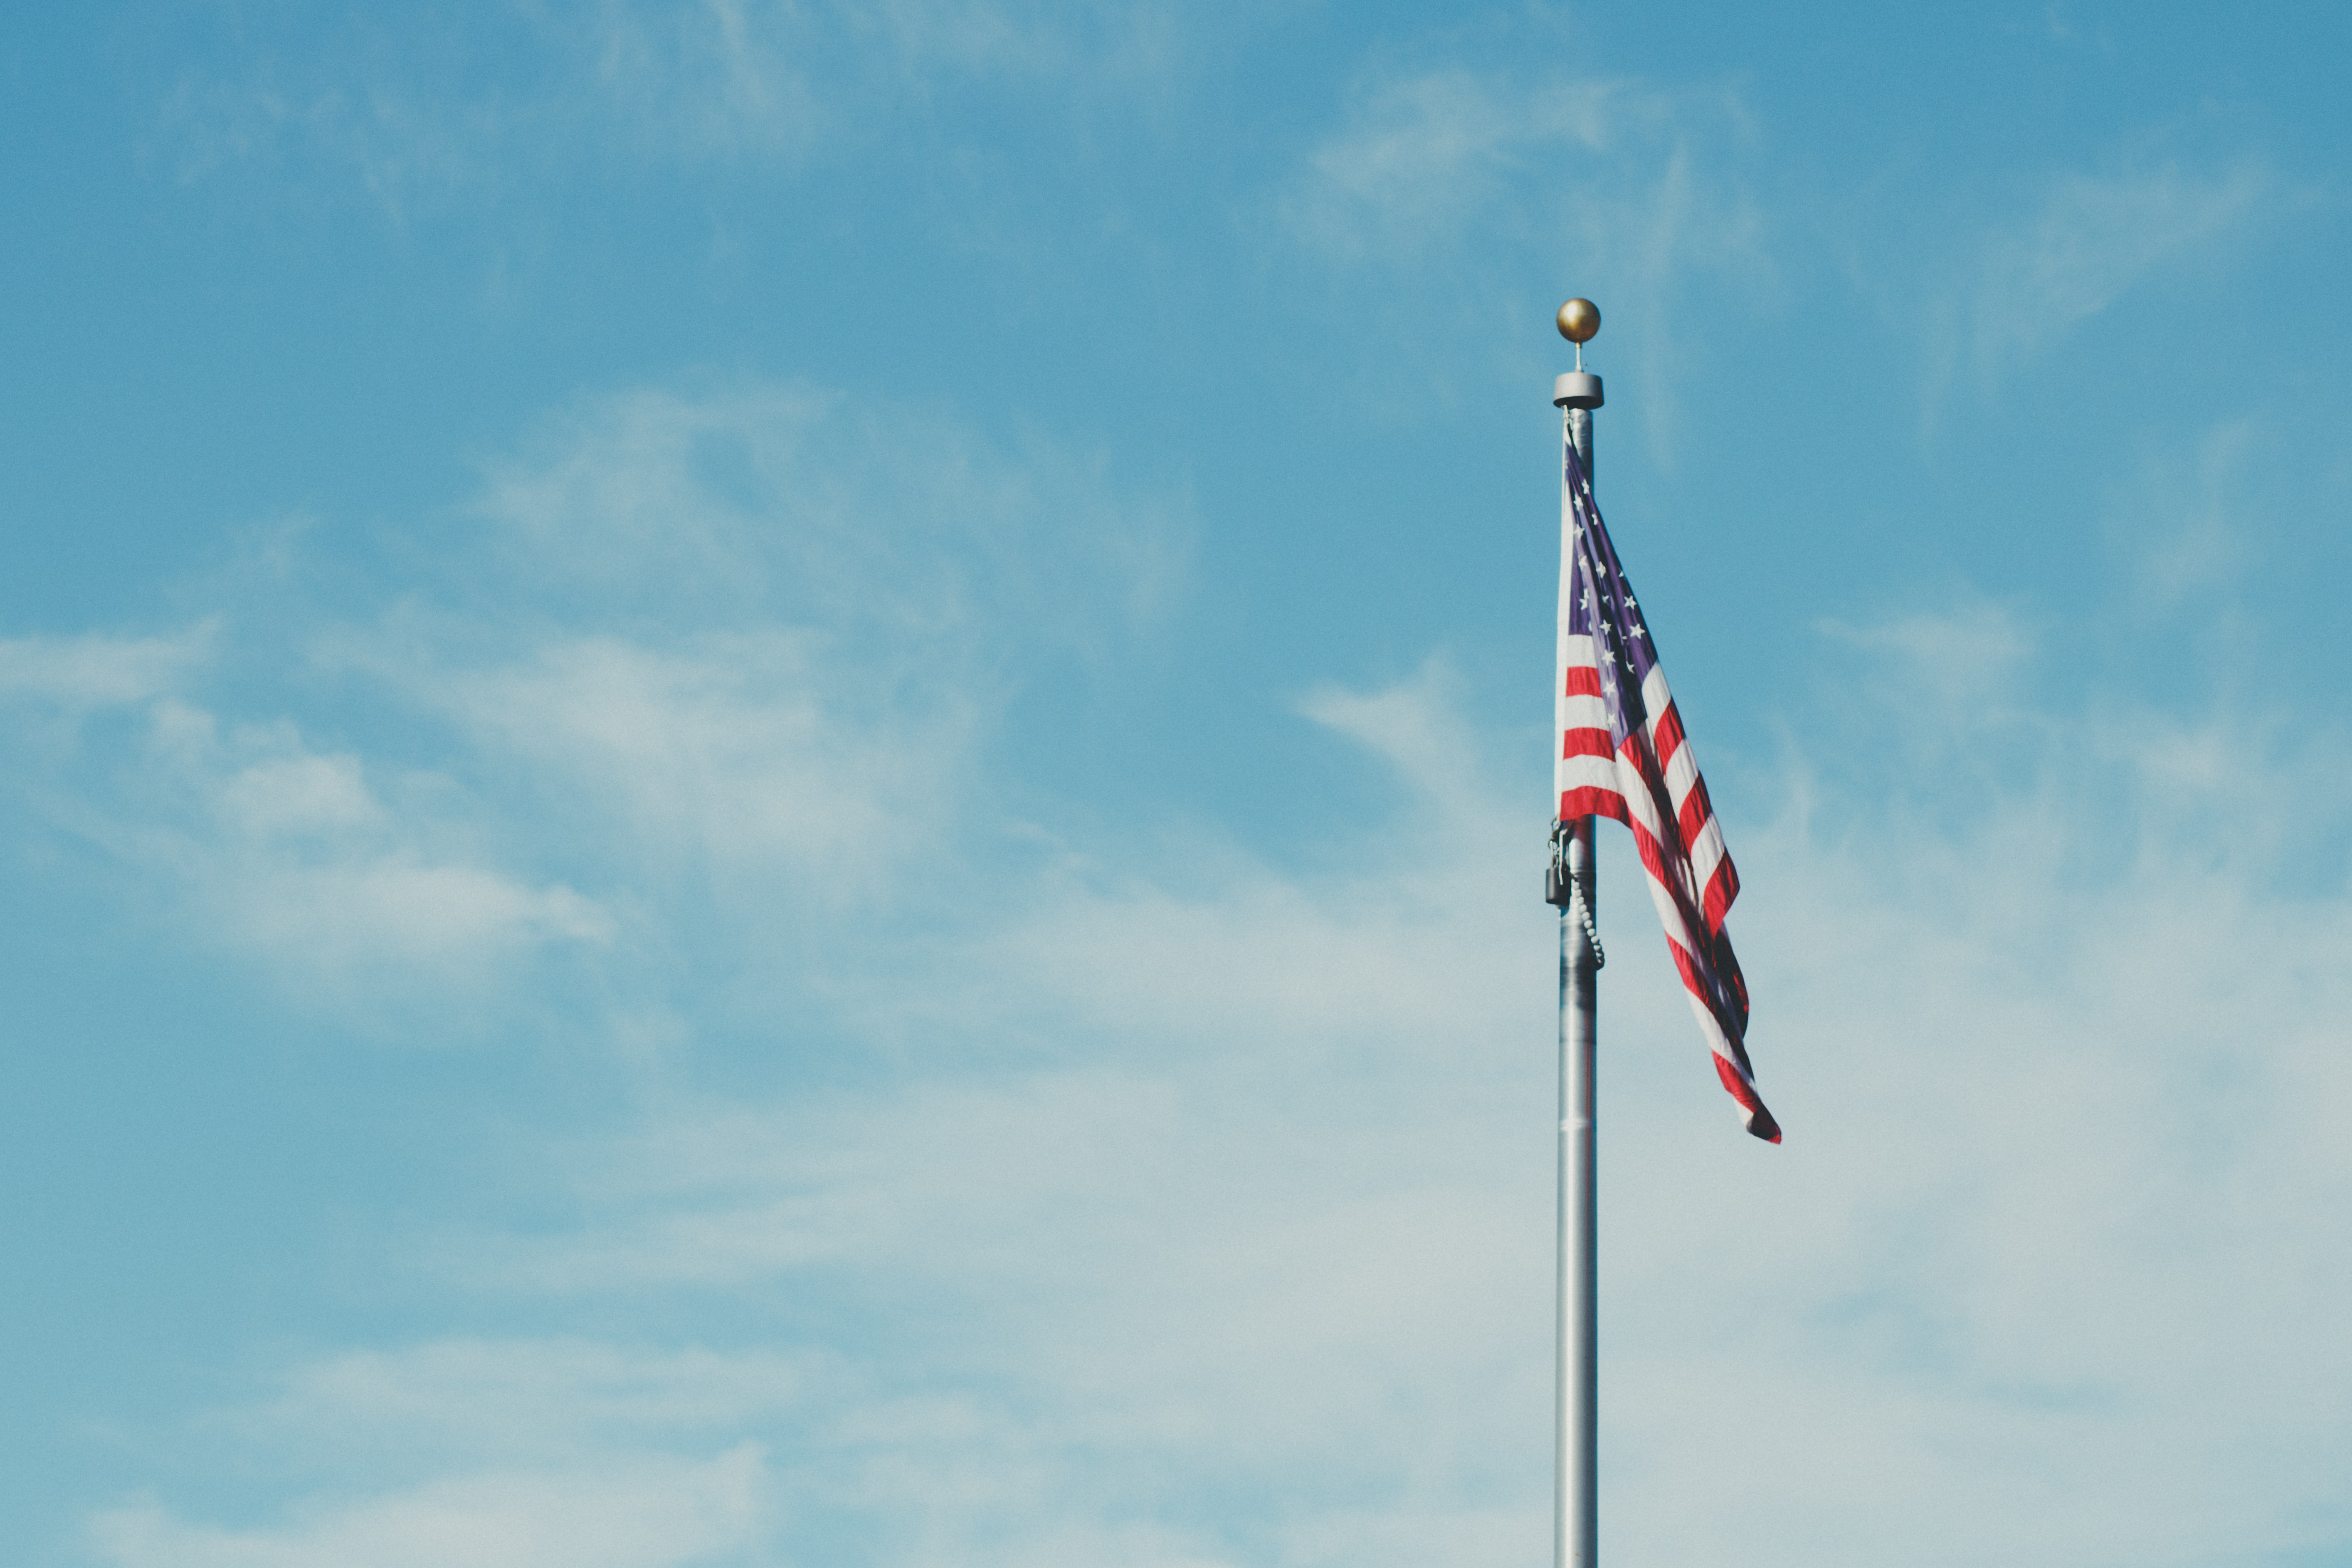 An American flag on a poll flying low against a blue sky